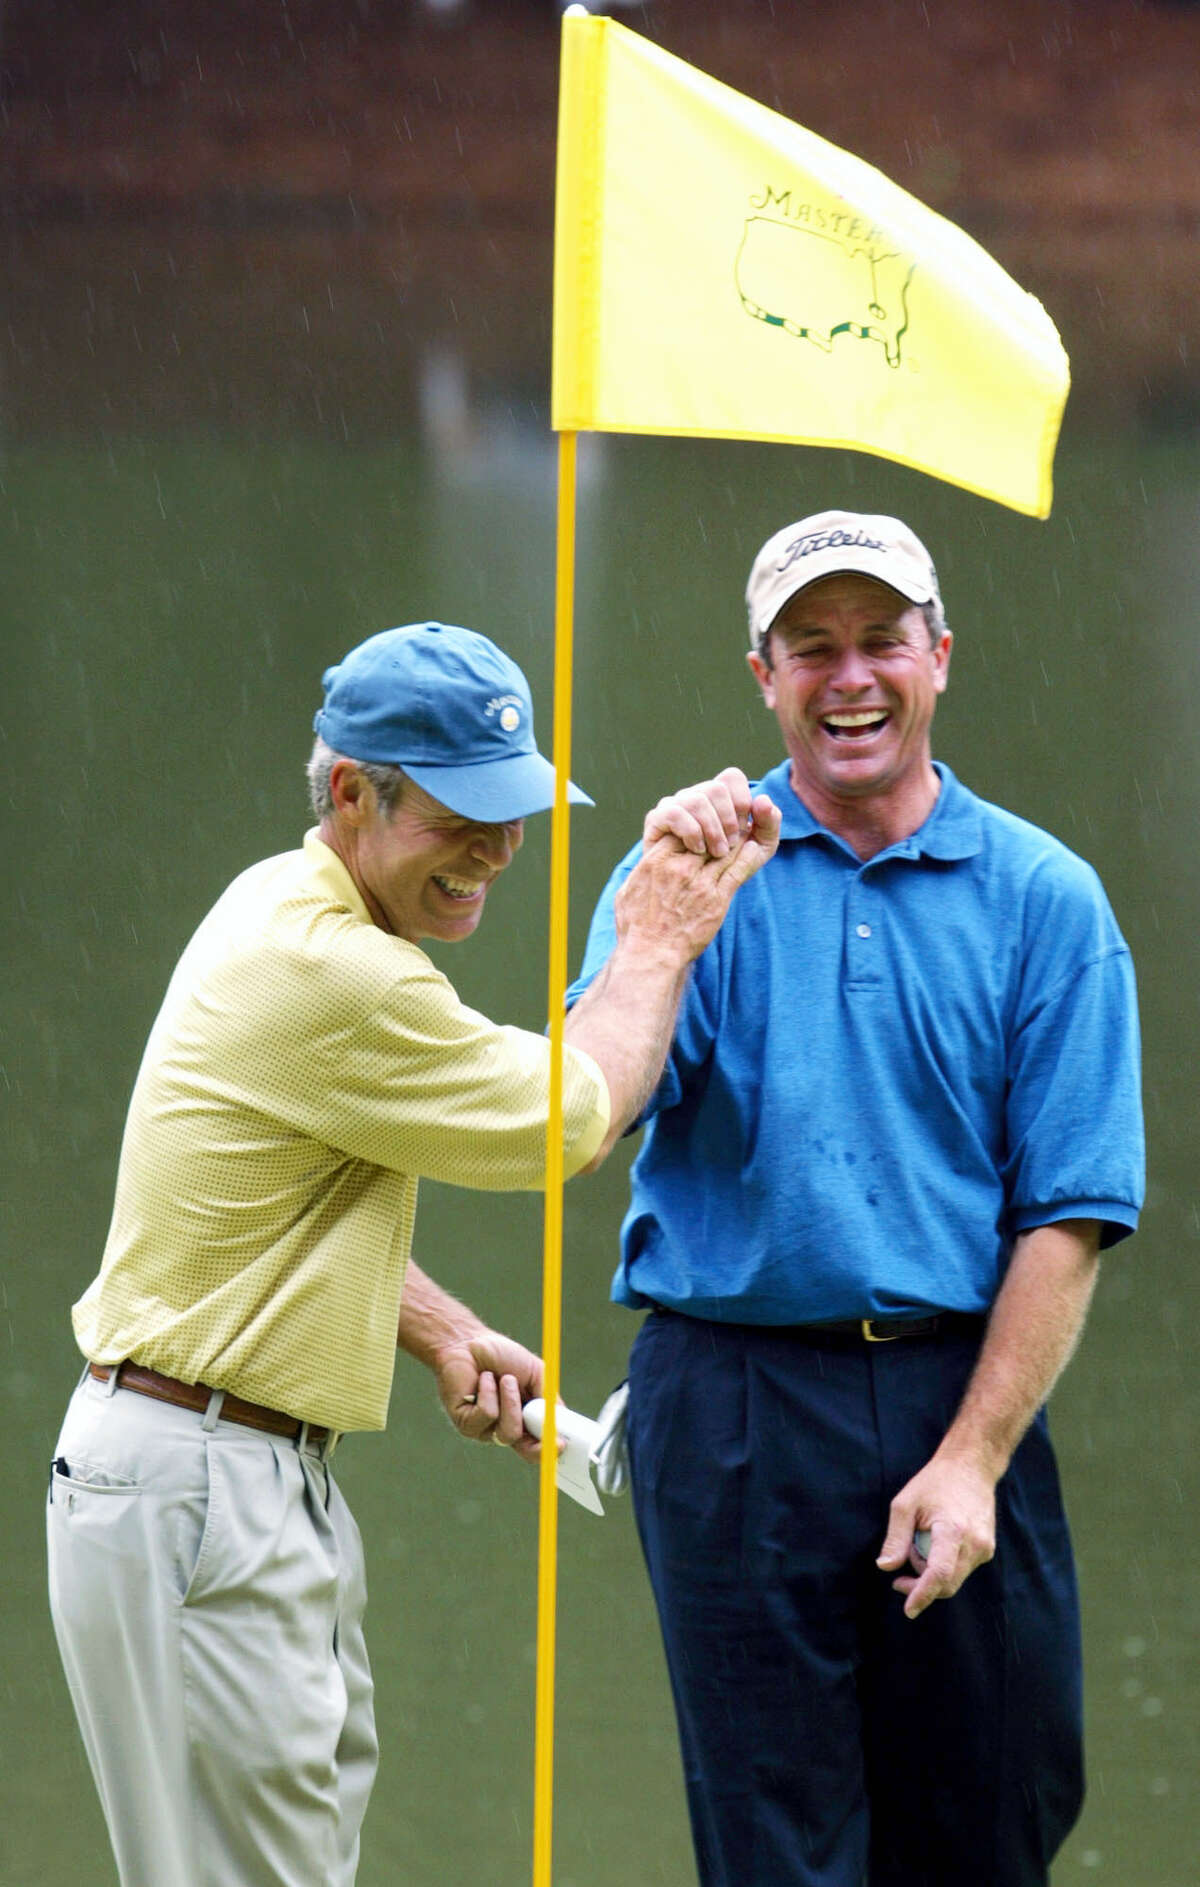 """In this file photo, Jerry Pate, right, is all smiles as he is greeted by Ben Crenshaw, left, at the ninth green after sinking the ball for par on a penalty shot from the tee box in the Masters' Par 3 Contest at the Augusta National Golf Club in Augusta, Ga. Augusta National has sent letters to its honorary invitees to inform them that the Par 3 Contest will be limited to players in the field and past Masters champions. U.S. Open, British Open and PGA Championship winners are exempt to the Masters for five years. After that, they become """"honorary invitees,"""" along with all past U.S. Amateur champions. Pate is a Pate, a former U.S. Amateur and U.S. Open champion."""